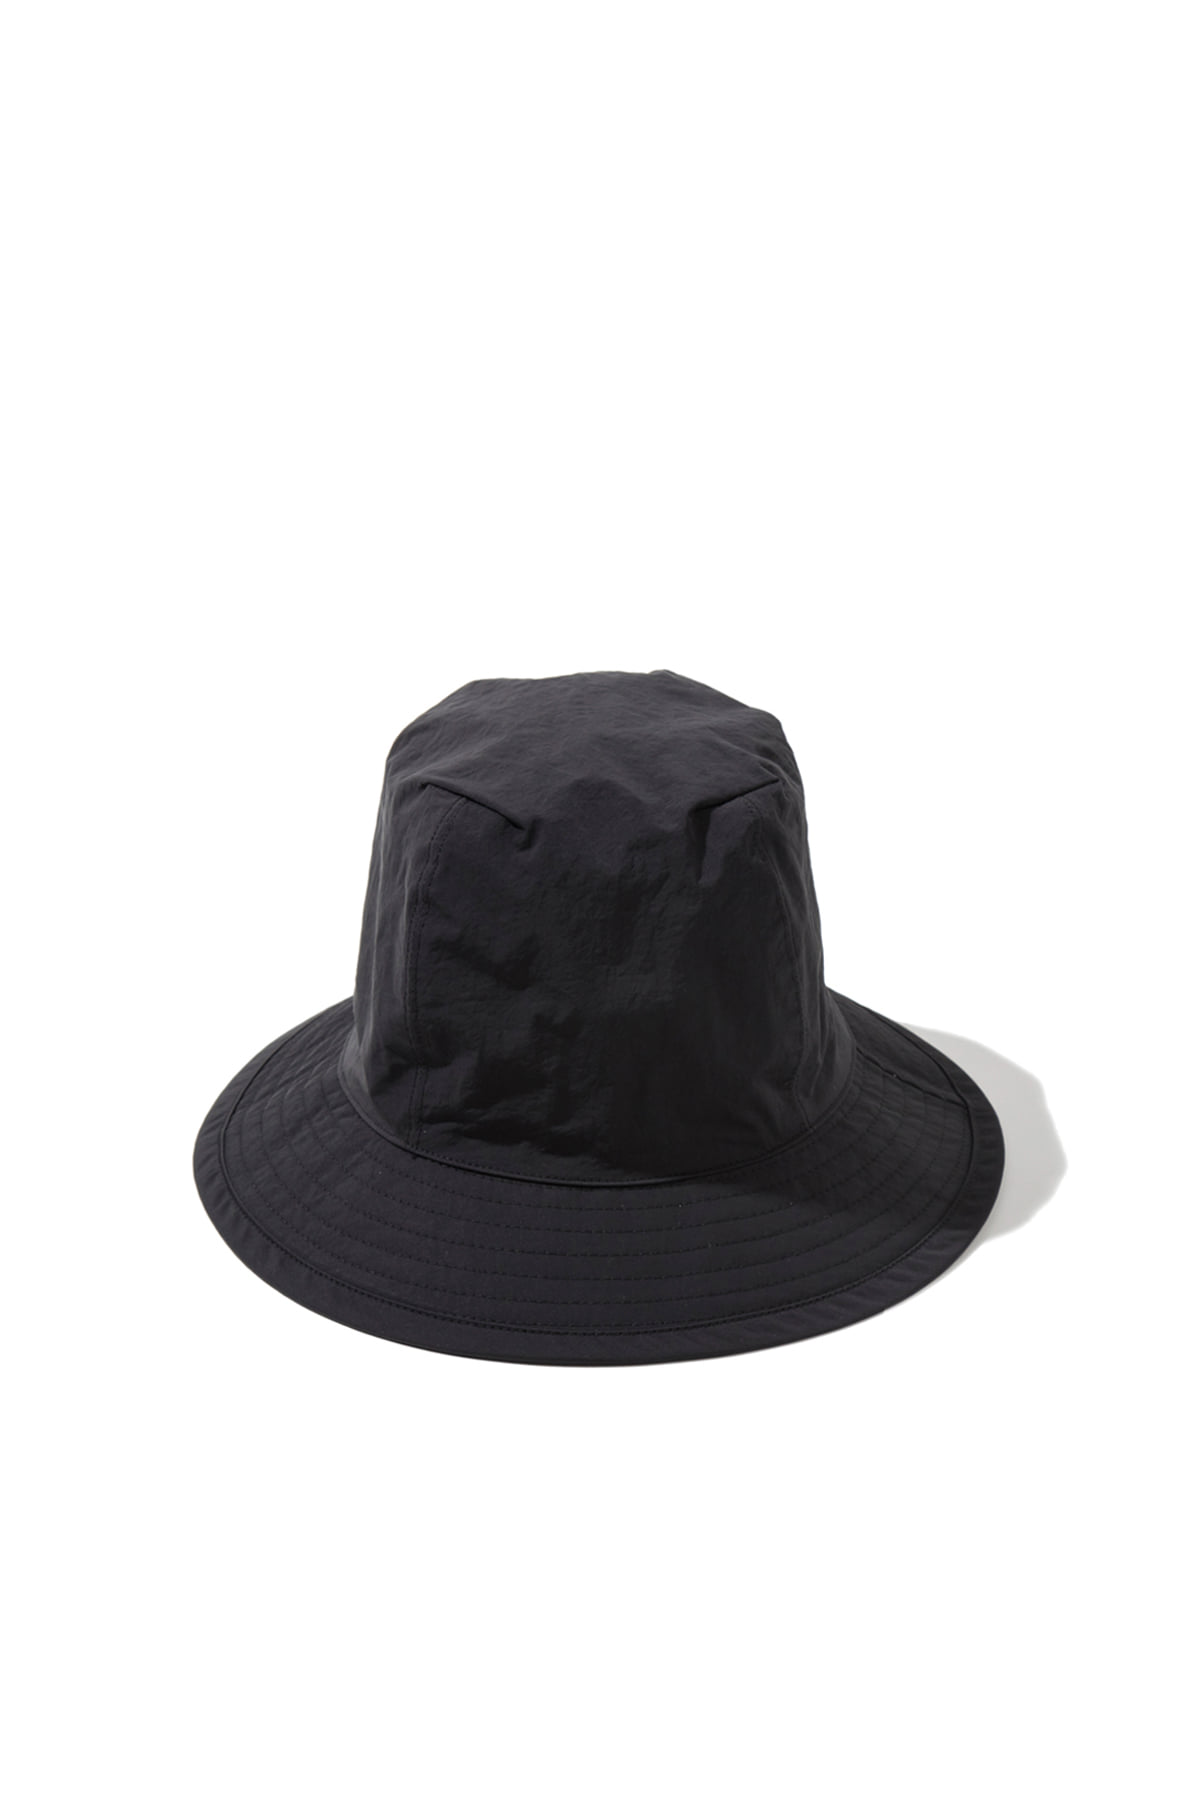 Blankof : HLG 01 H1 Bucket Hat (Black)